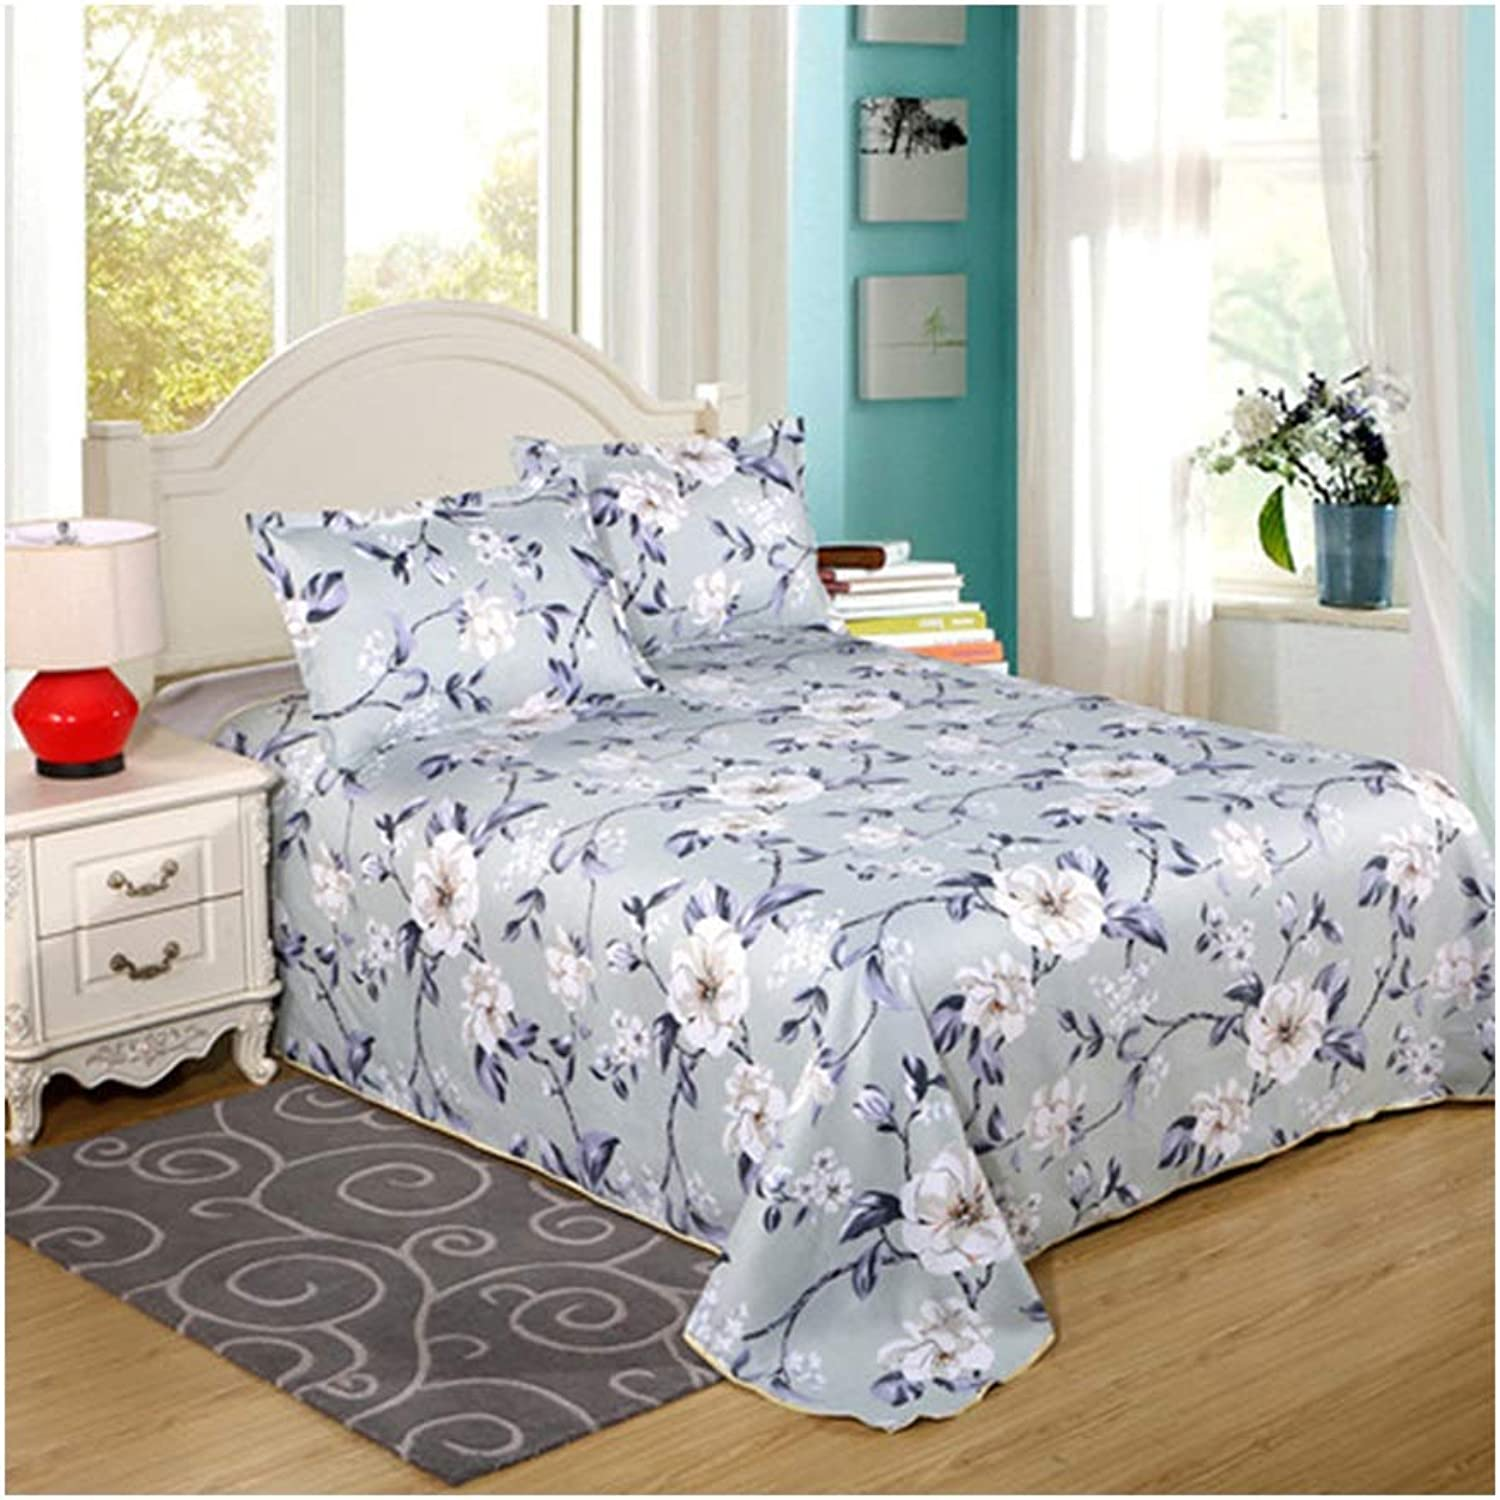 Sheets, 100% Cotton Student Dormitory Bedroom Hotel Bedspread1.5 1.8 2.3 2.5m Single Bed Double Bed (color   B, Size   150  230cm)